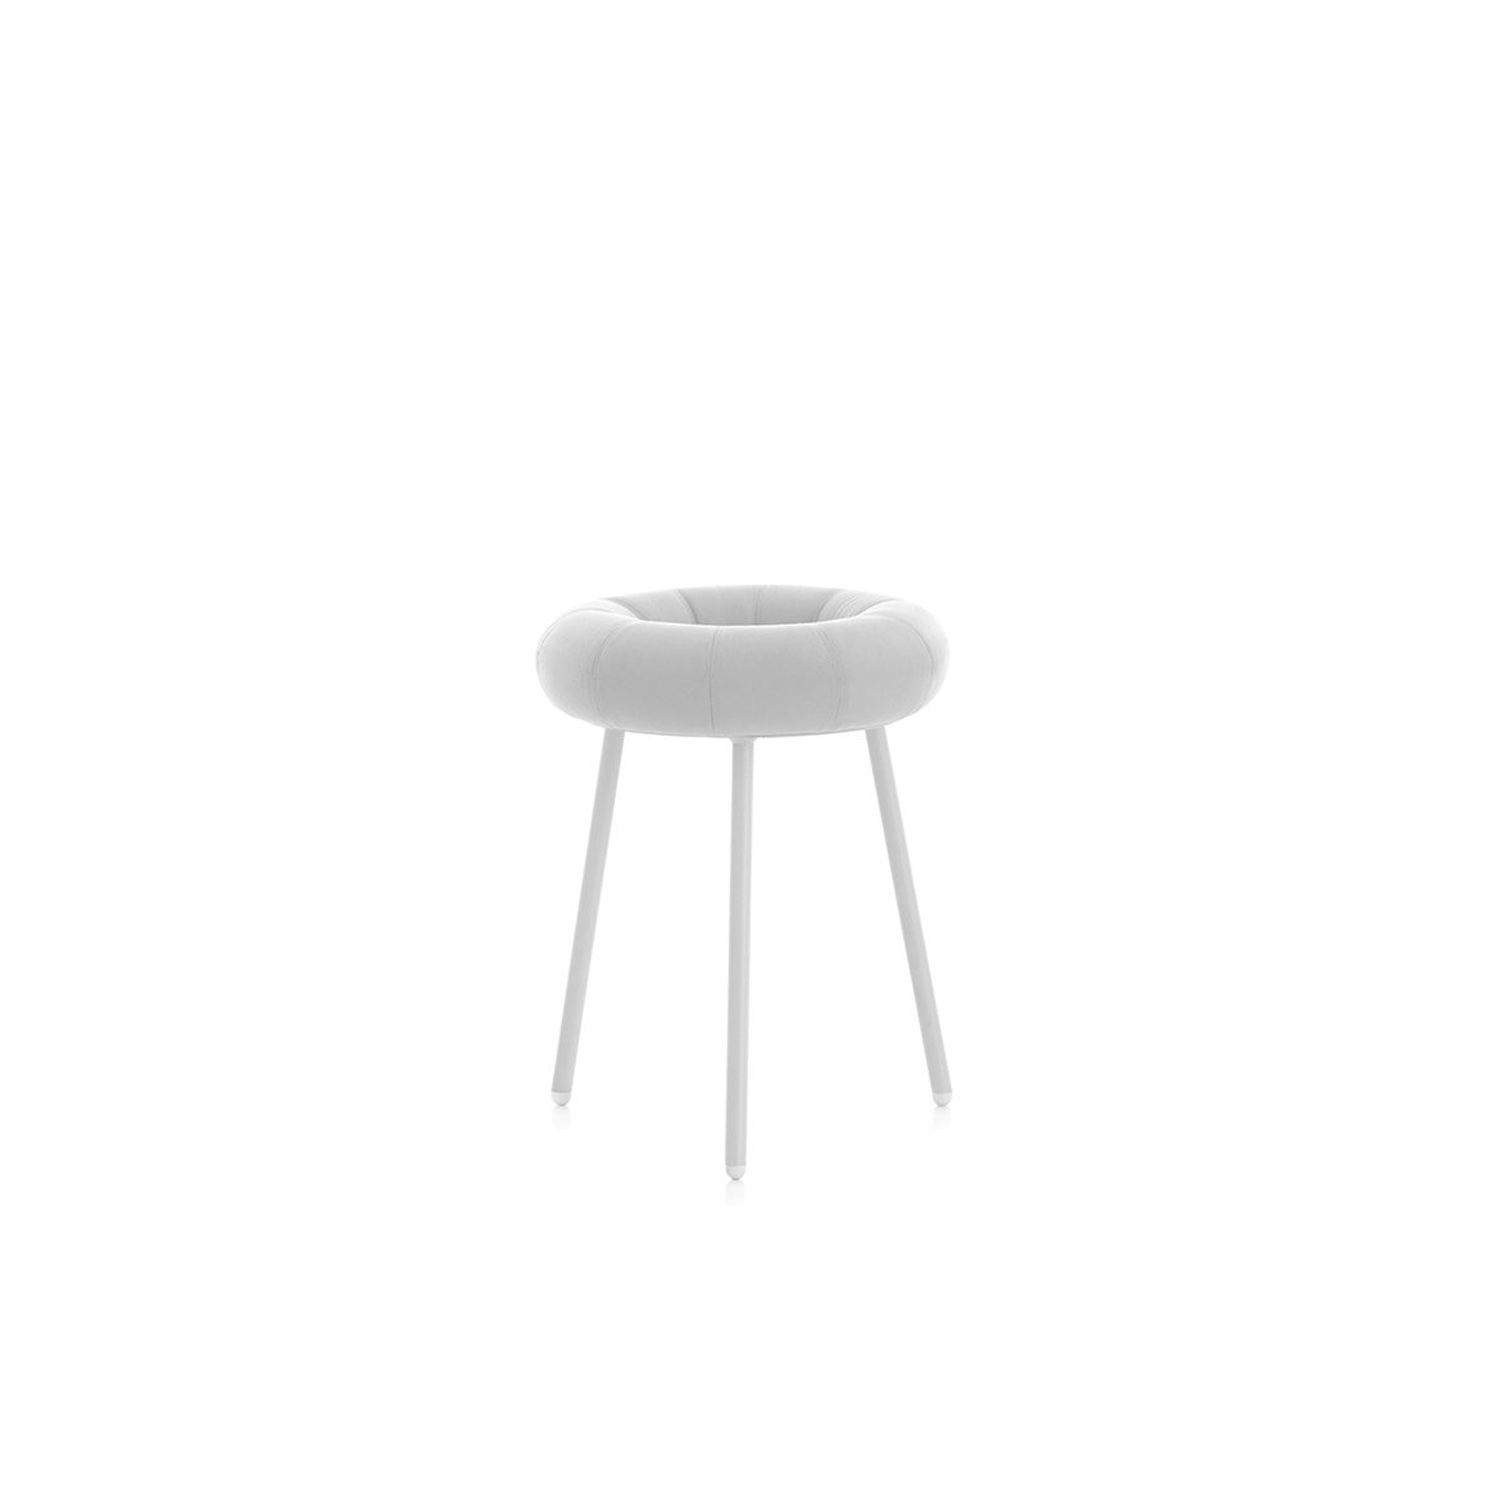 """Donut Stool - Donut is an outdoor stool with such a user-friendly design that you can't help smiling as soon as you see it. With its undeniable, obvious inspiration, there's very little we can add to describe its appearance. Its designer, Japanese-born Mikiya Kobayashi, was inspired by the shape of two doughnuts to create the seat of this amusing stool. A fun idea that's sure to be a great piece to add to any setting, it's certainly got flair and the """"wow"""" factor.  The seat is made using a soft foam filling and the wrinkles produced by the fabric emphasise its similarity to a doughnut even more. The fabric is especially suitable for outdoor use, so it's extremely weather resistant, plus the cover can be removed for washing. The soft seat means it's much more comfortable for sitting on for long periods than other stools made from more rigid materials.   Matter of Stuff"""